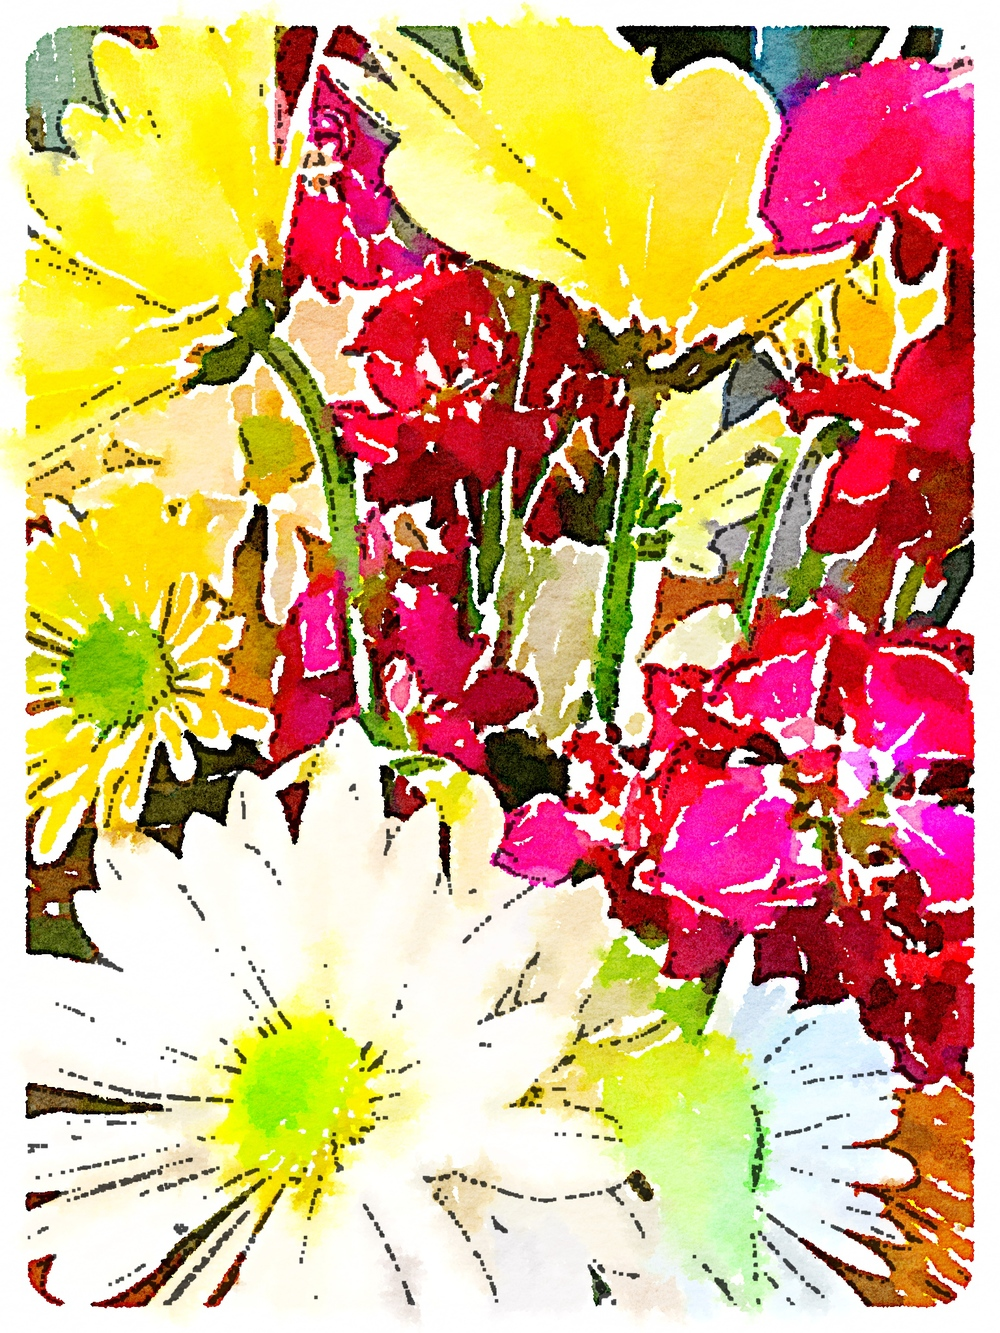 More playing with #Waterlogue app while enjoying my birthday bouquet while it lasts...